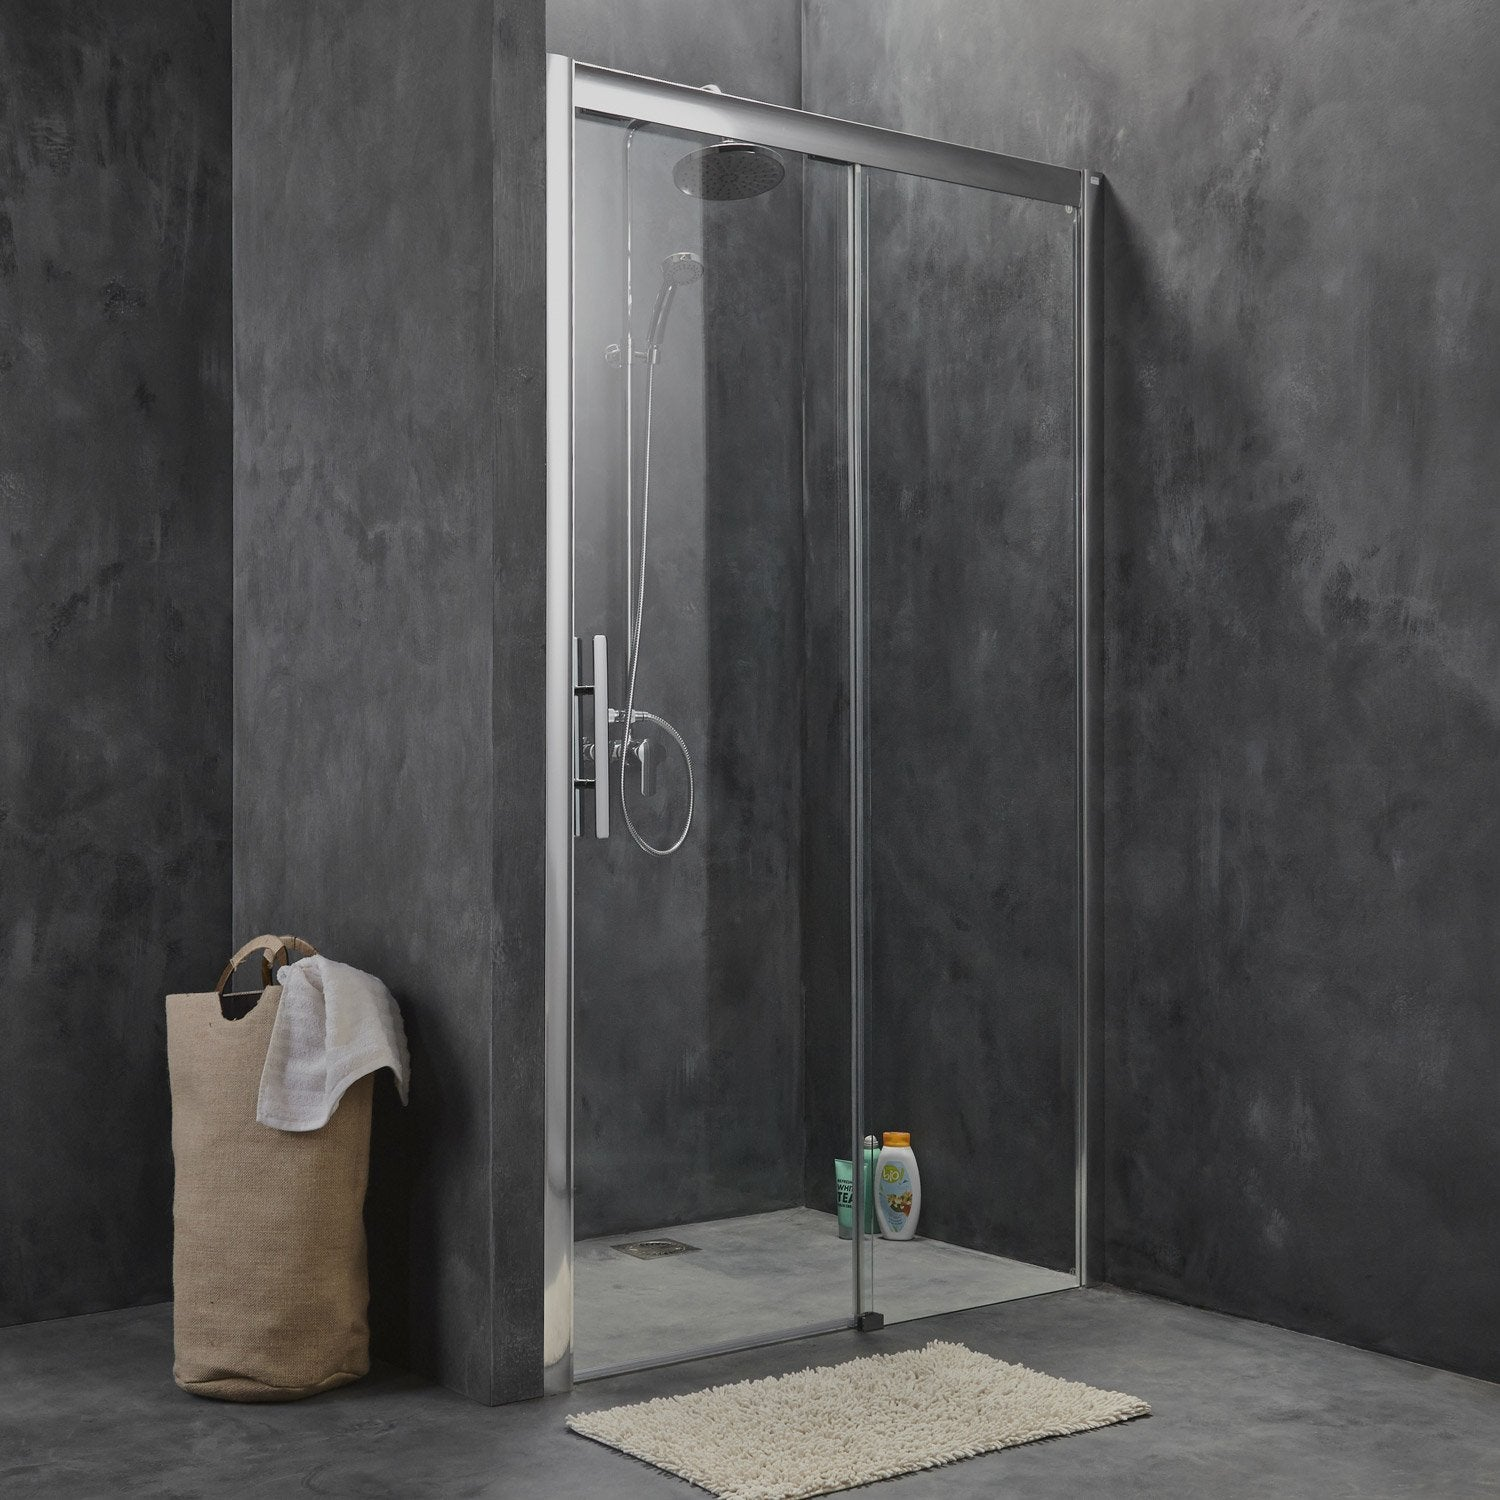 Porte de douche coulissante 120 cm transparent adena for Porte coulissante 120 cm